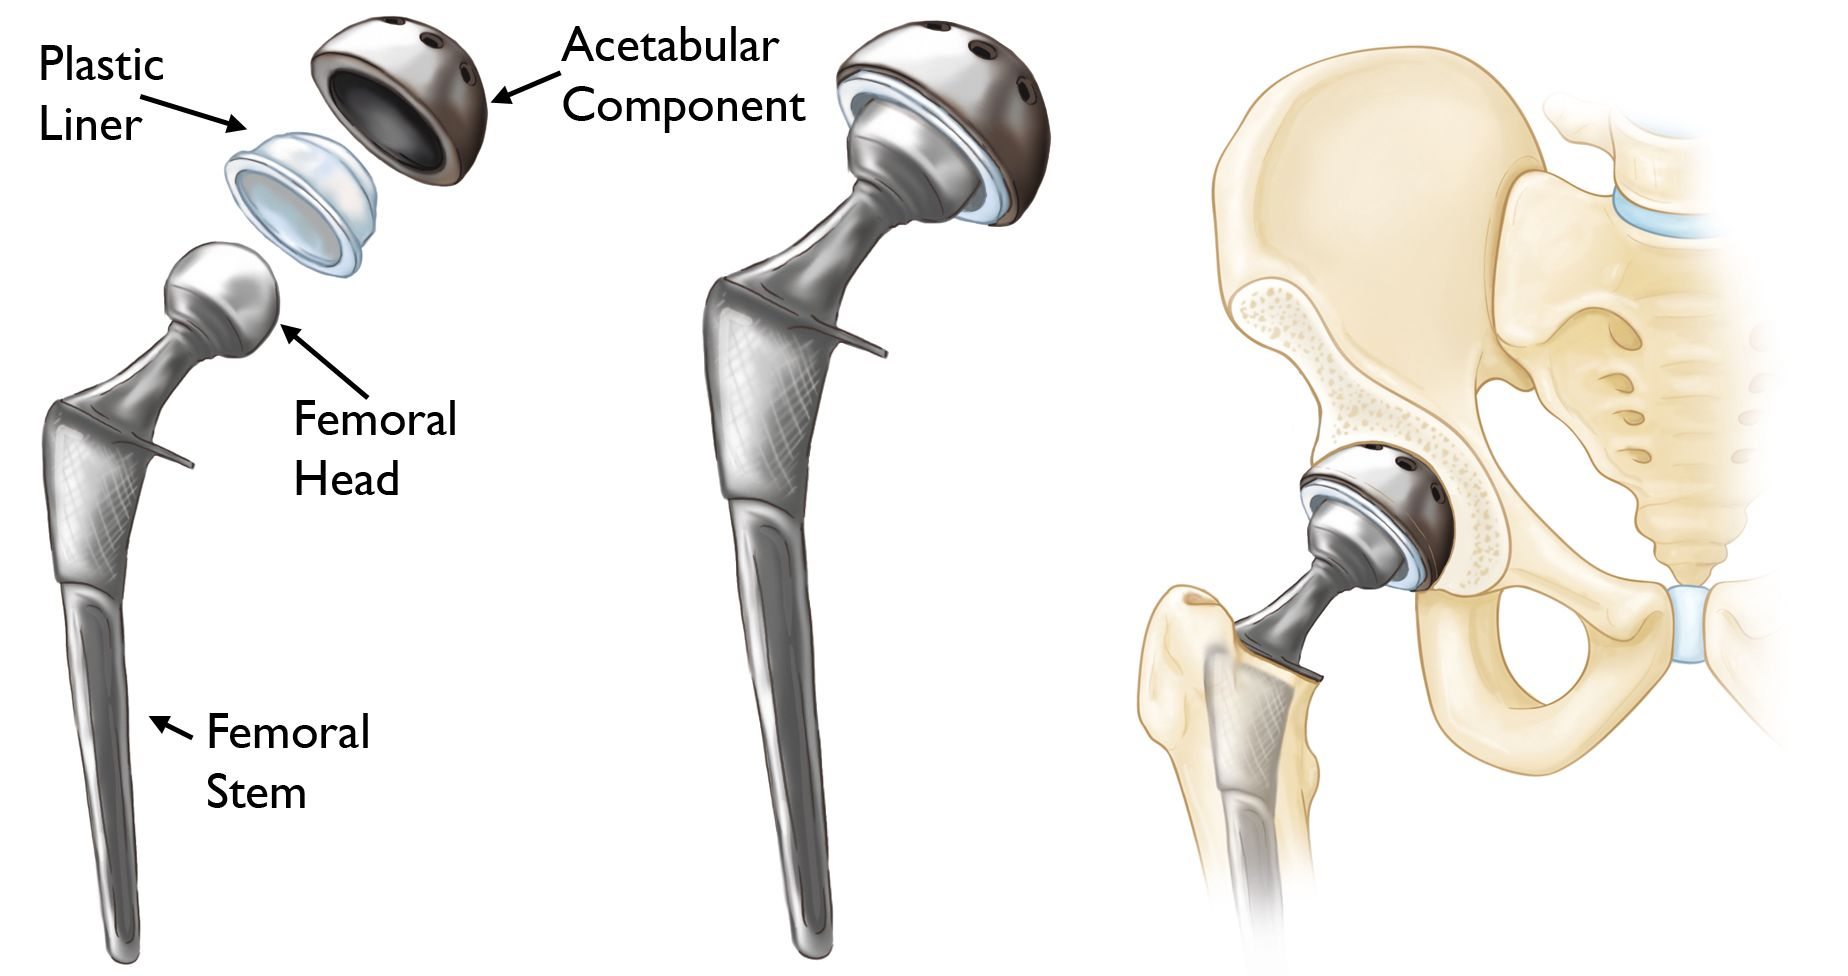 Total hip replacement implants